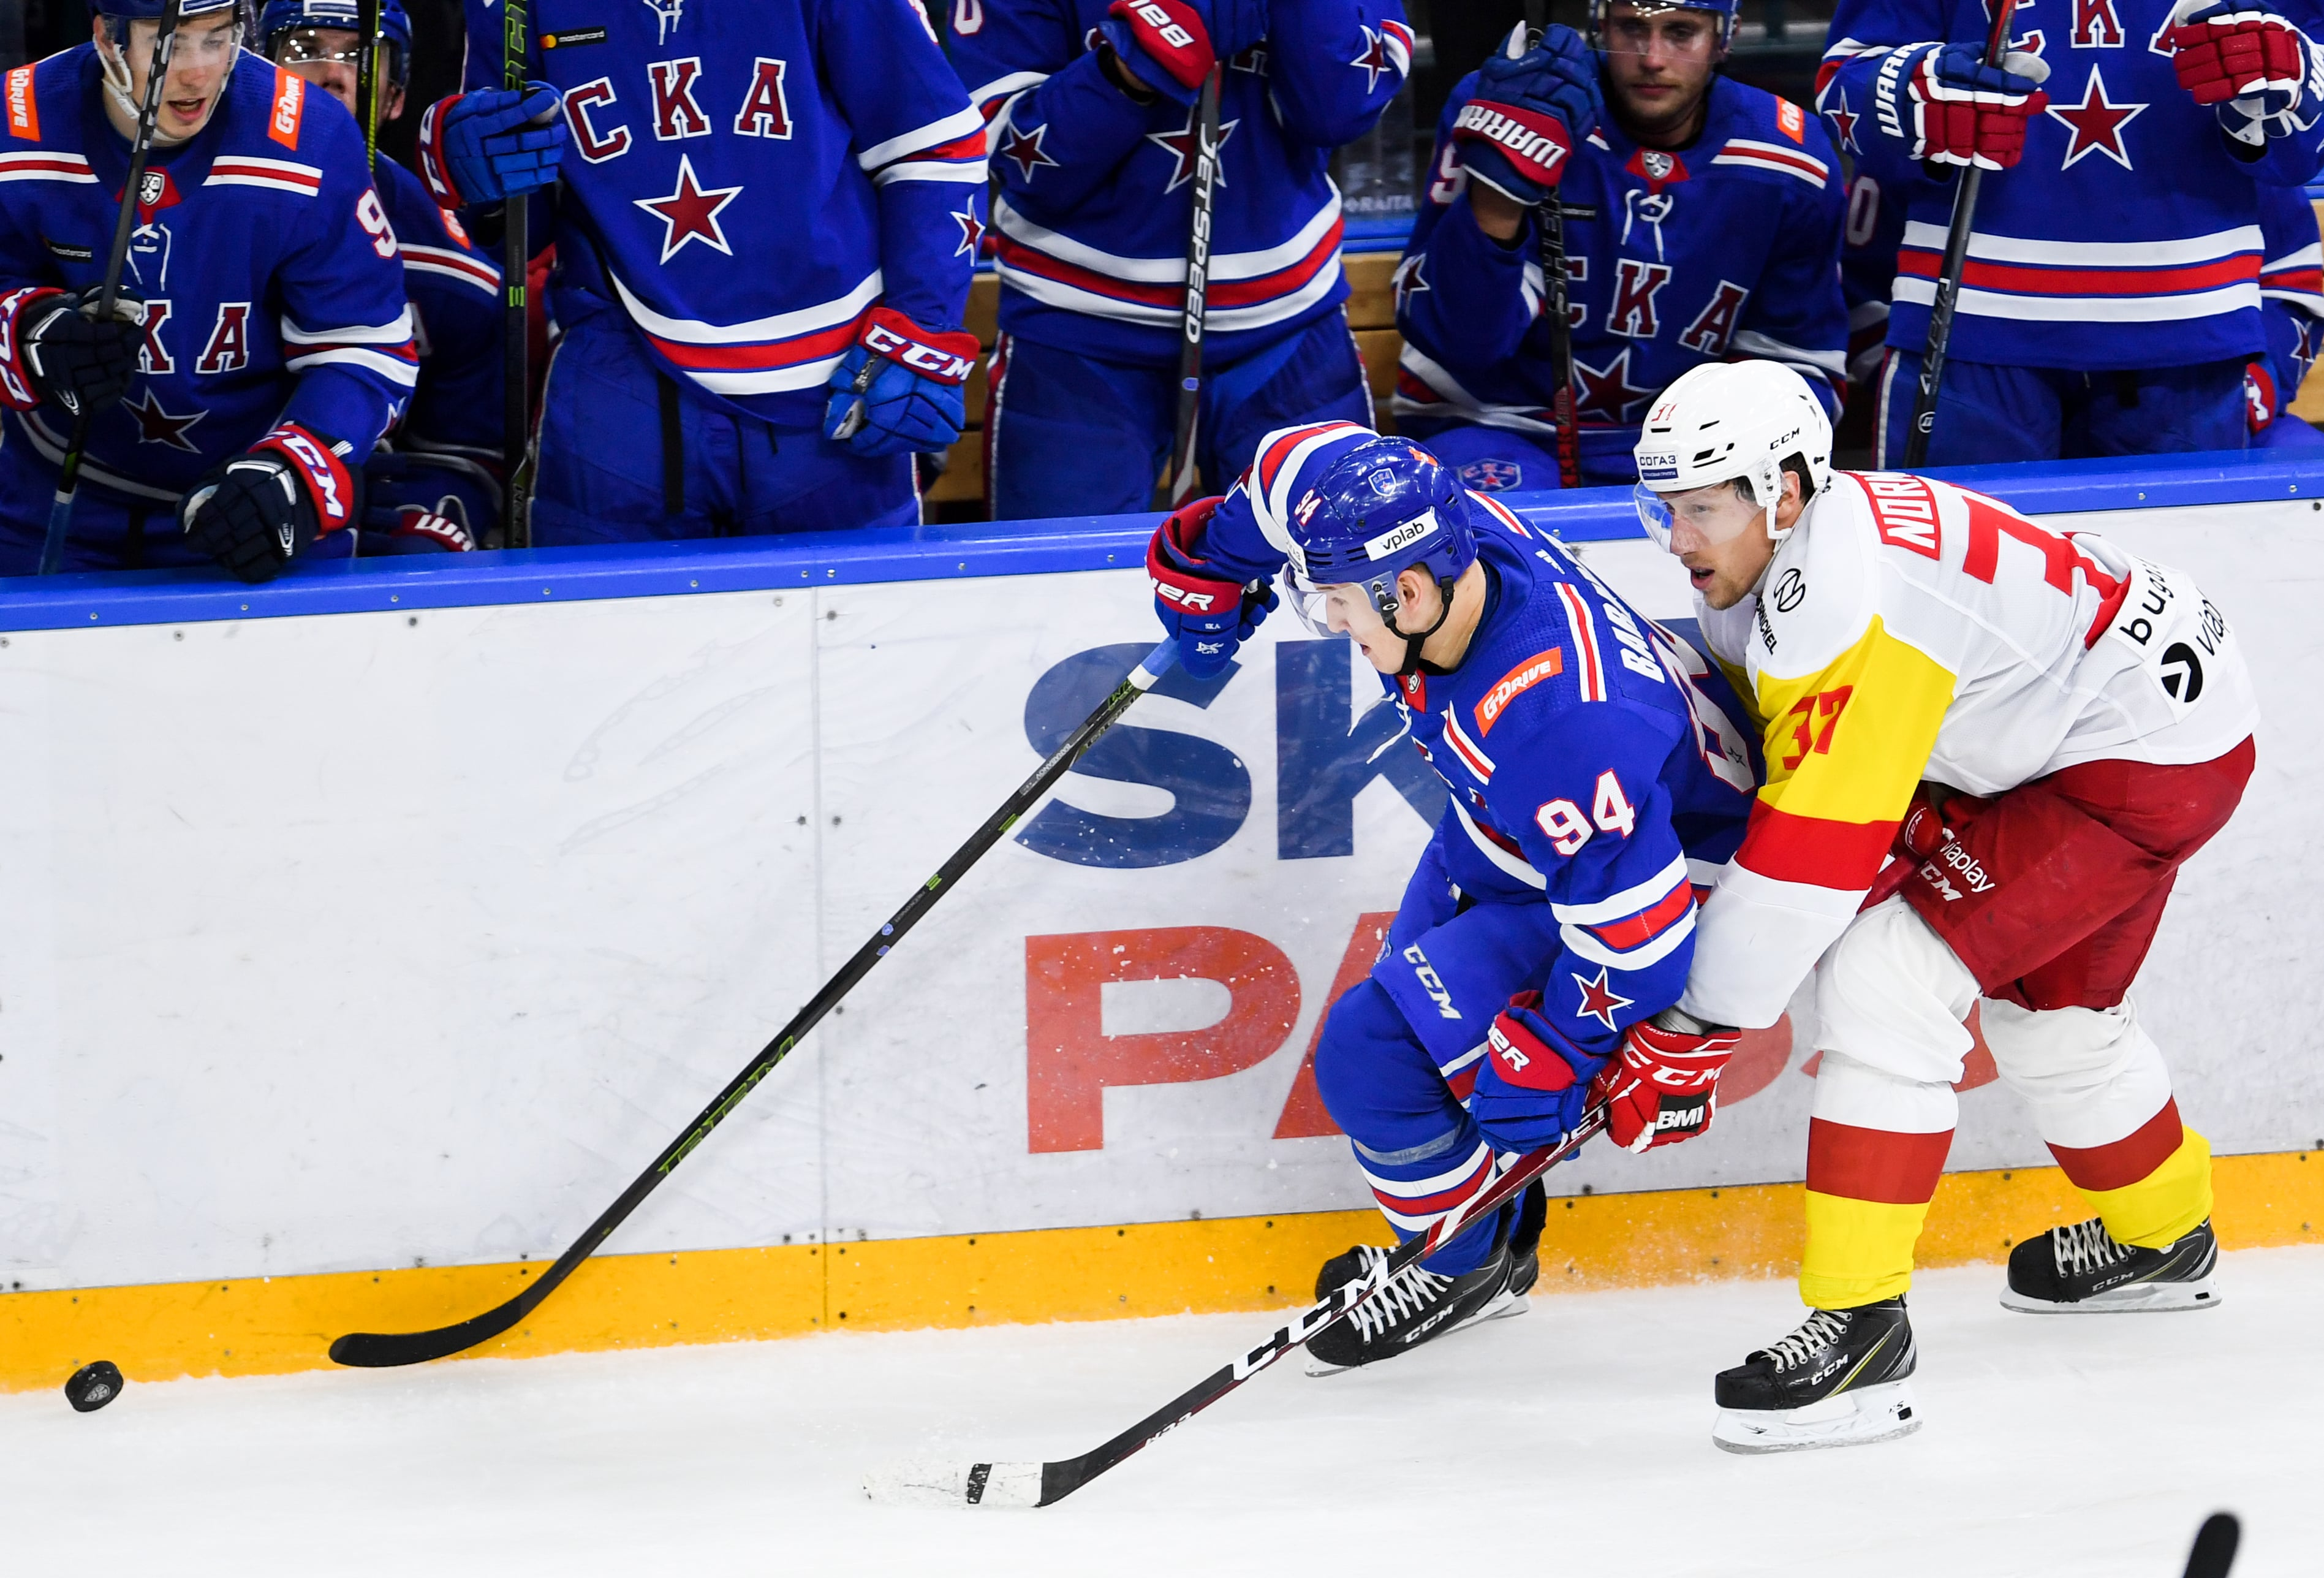 SKA will play against Jokerit in the second round of the KHL Gagarin Cup playoffs